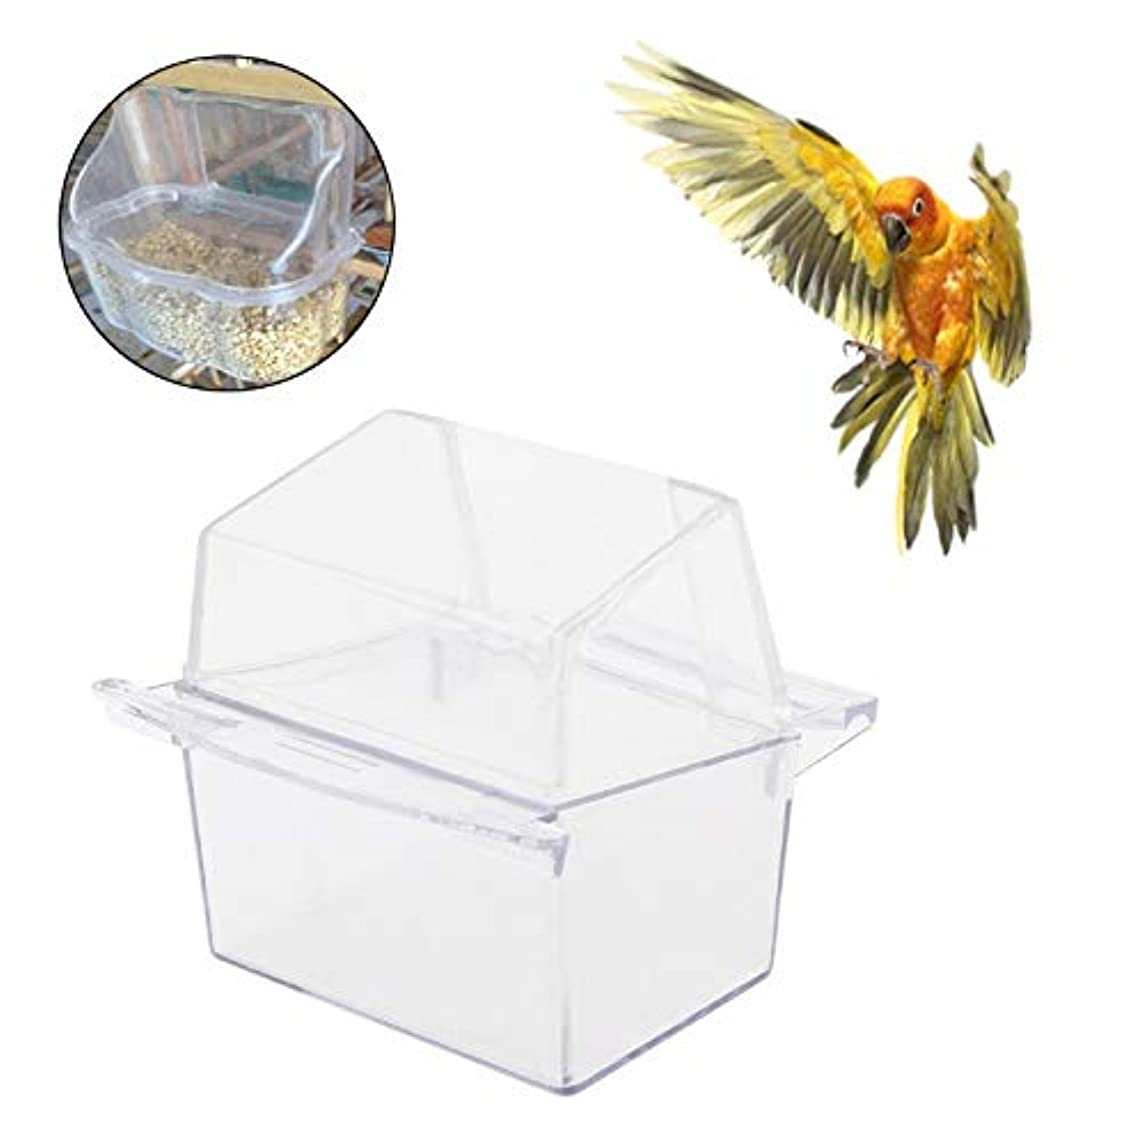 Pig Feeder - Pet Bird Feeder Drinker Food Bowl Parrot Water Farming Equipment - Tube Bath House Prong Food Cups Cameras Bird Accessories Syringe Needle Pole Device Bucket Outside Feeders Platfor